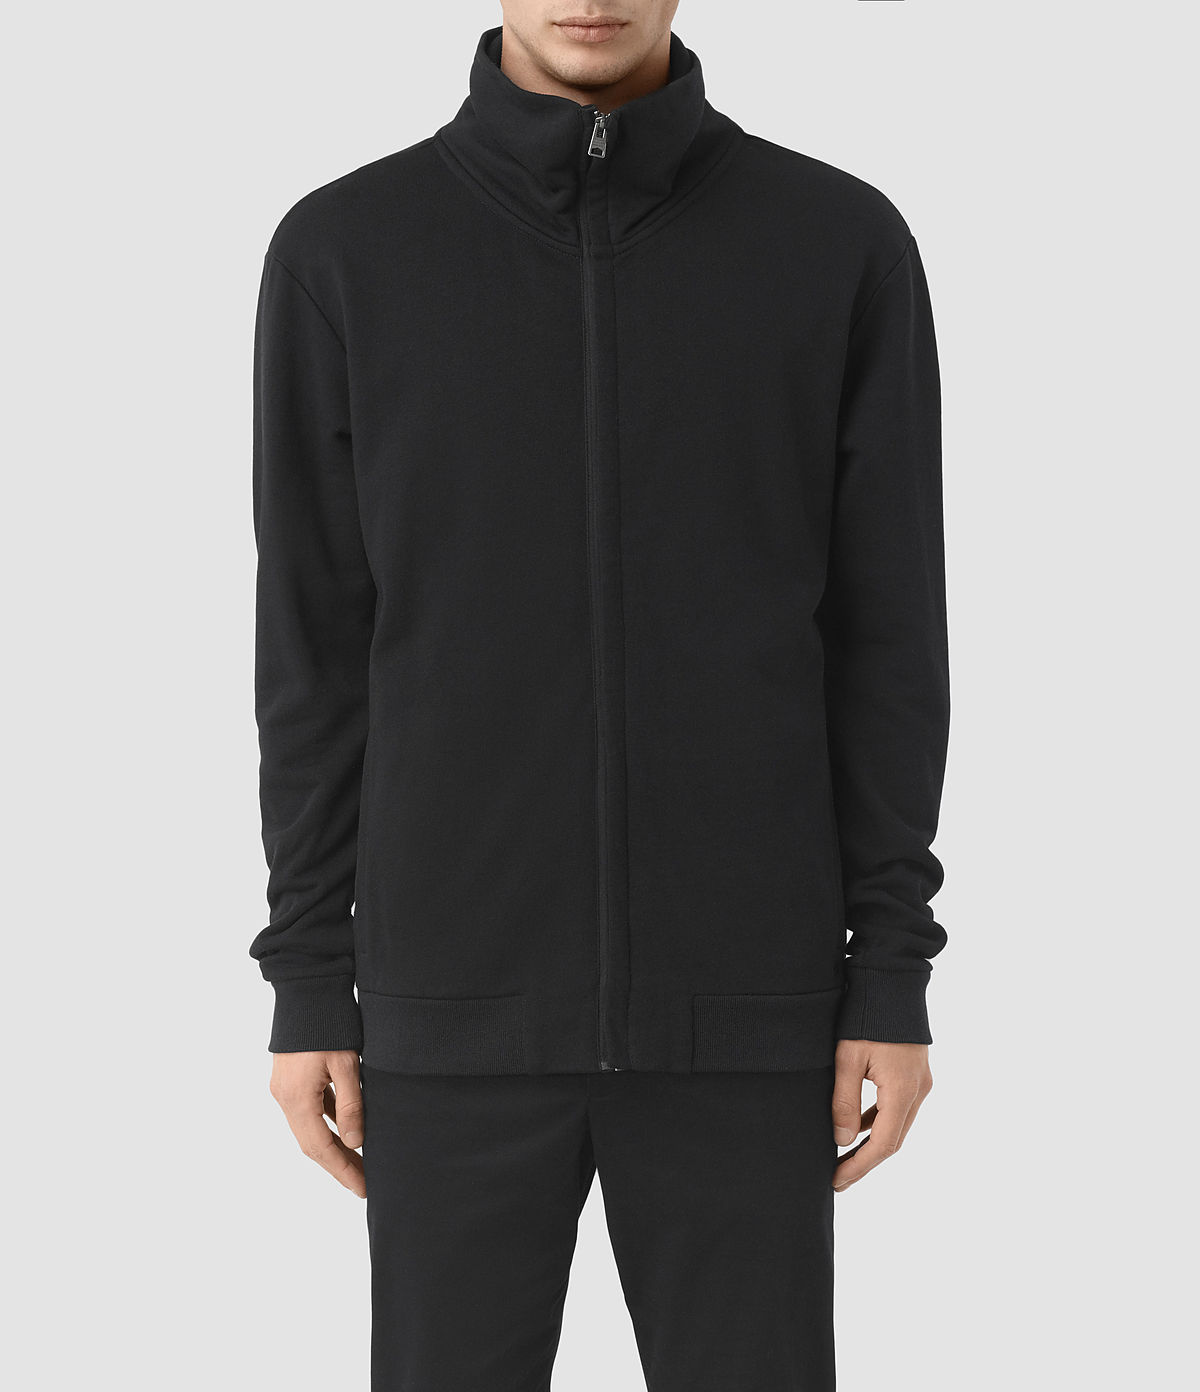 lendall-funnel-neck-sweatshirt